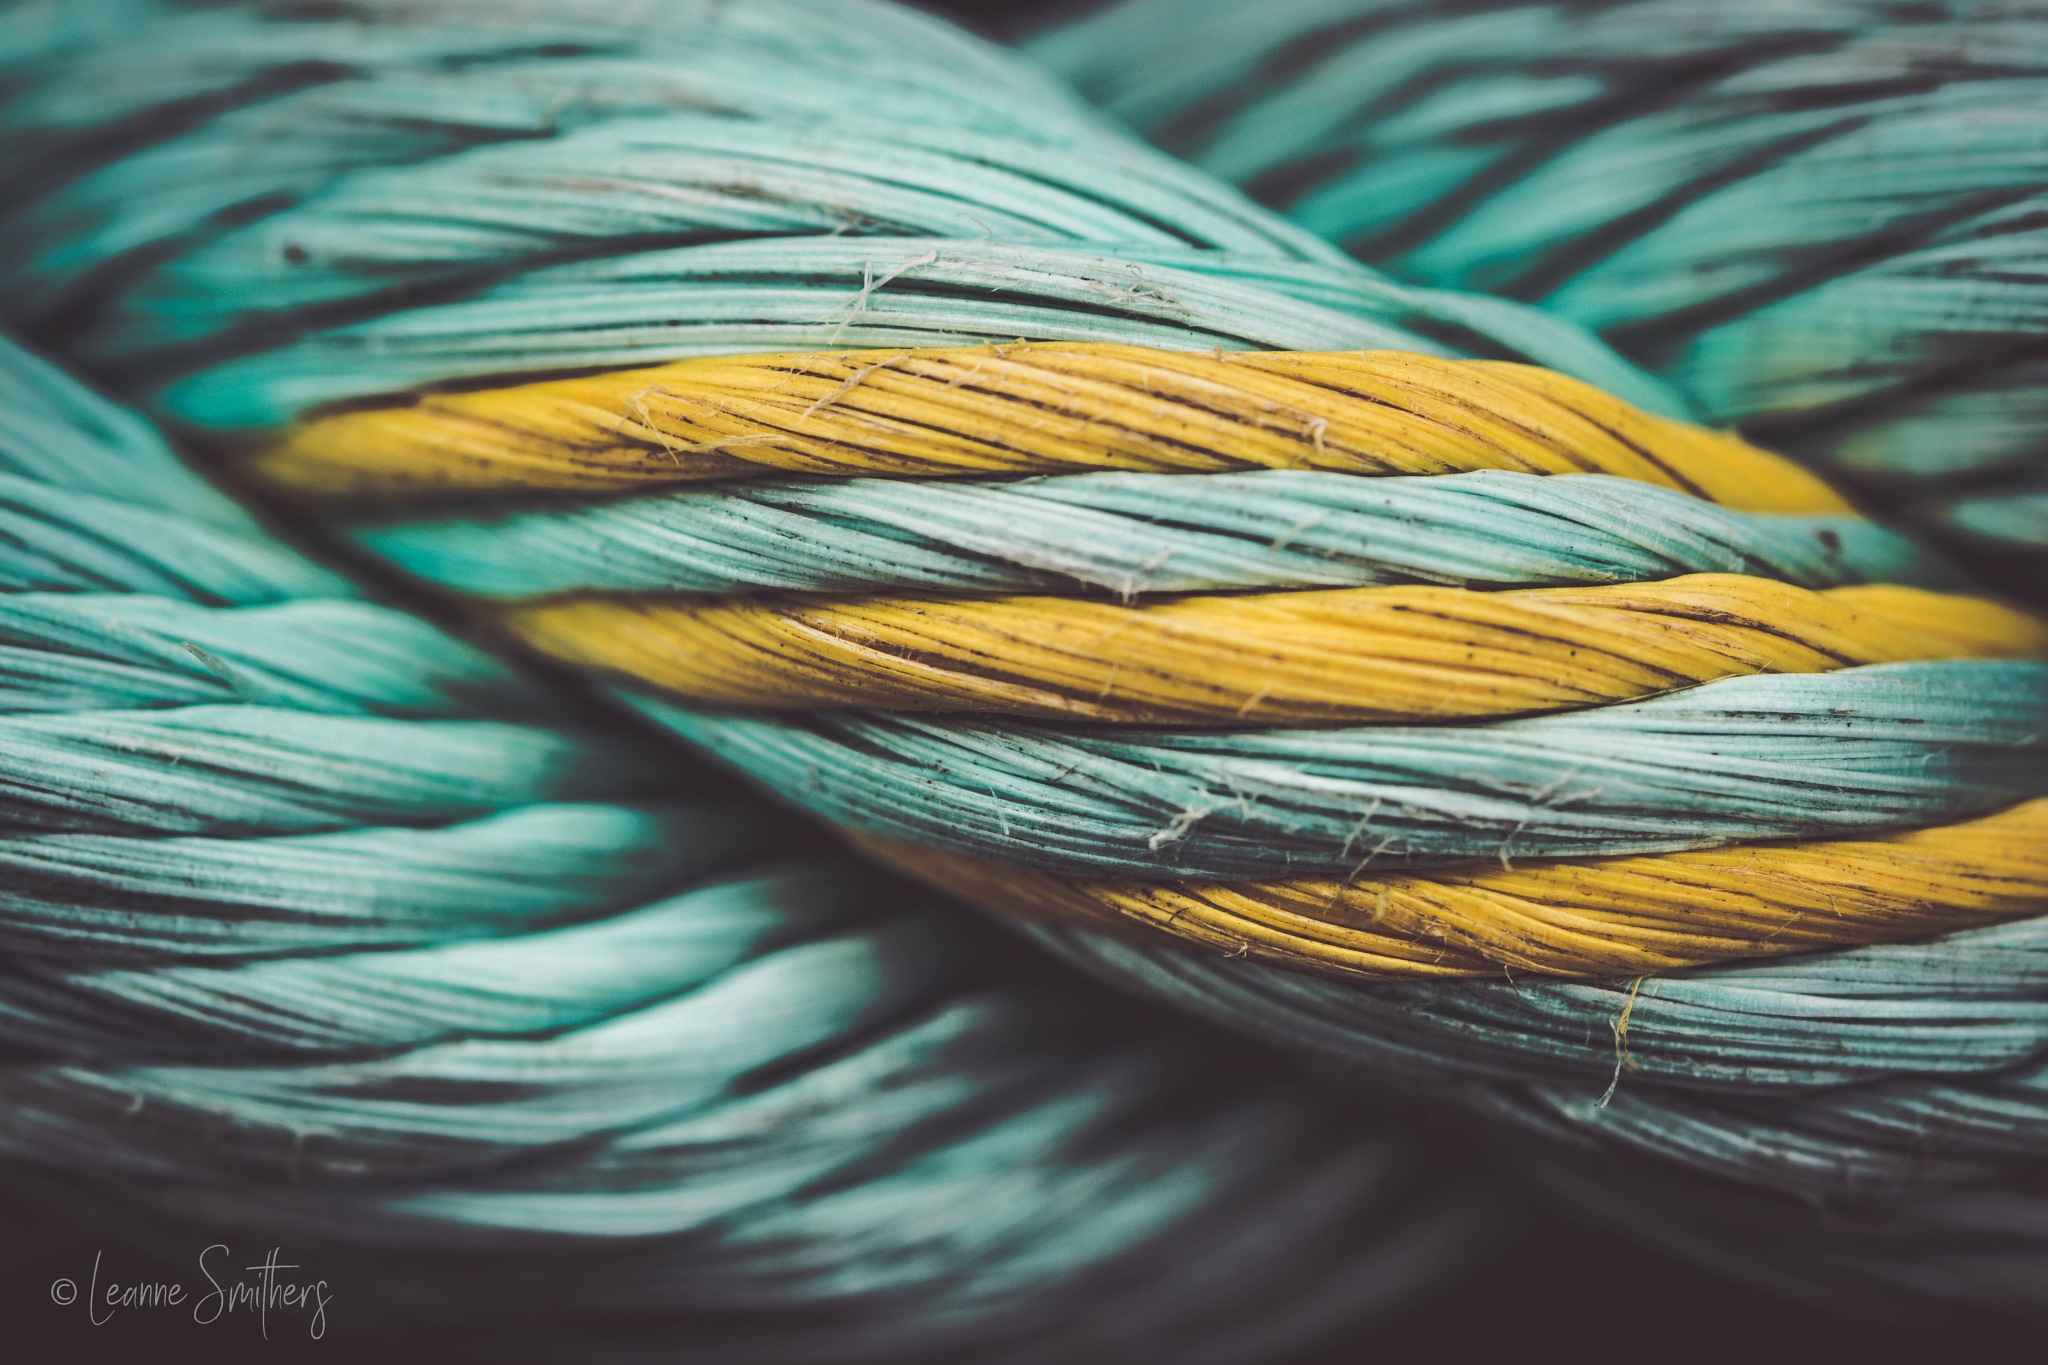 Rope by Leanne Smithers